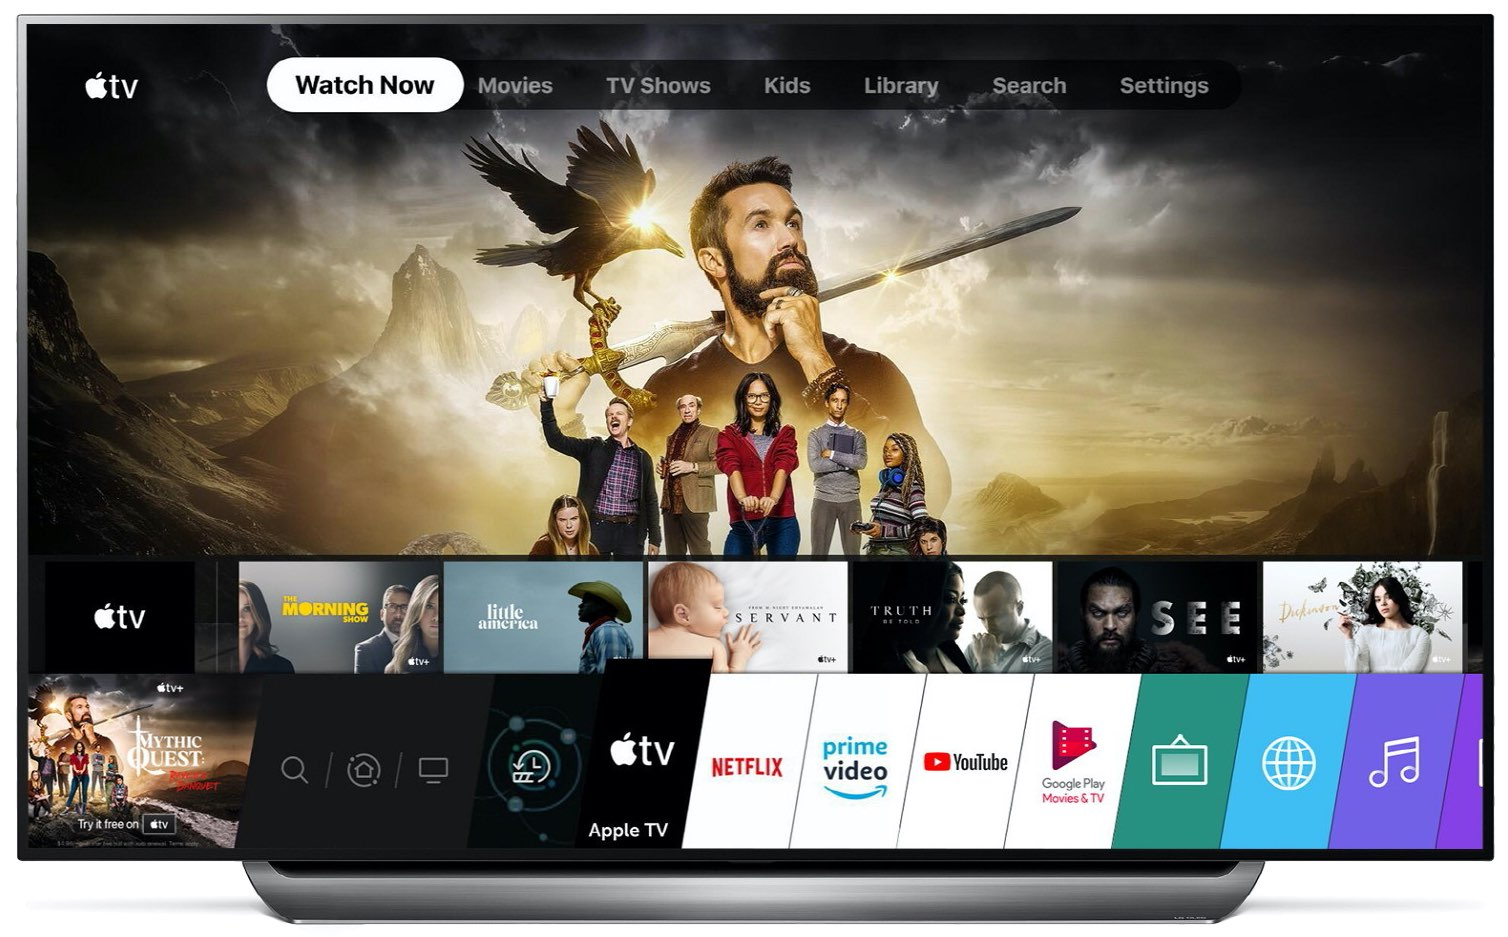 LG changes tune, now claims AirPlay 2 and HomeKit support will come to select 2018 TVs